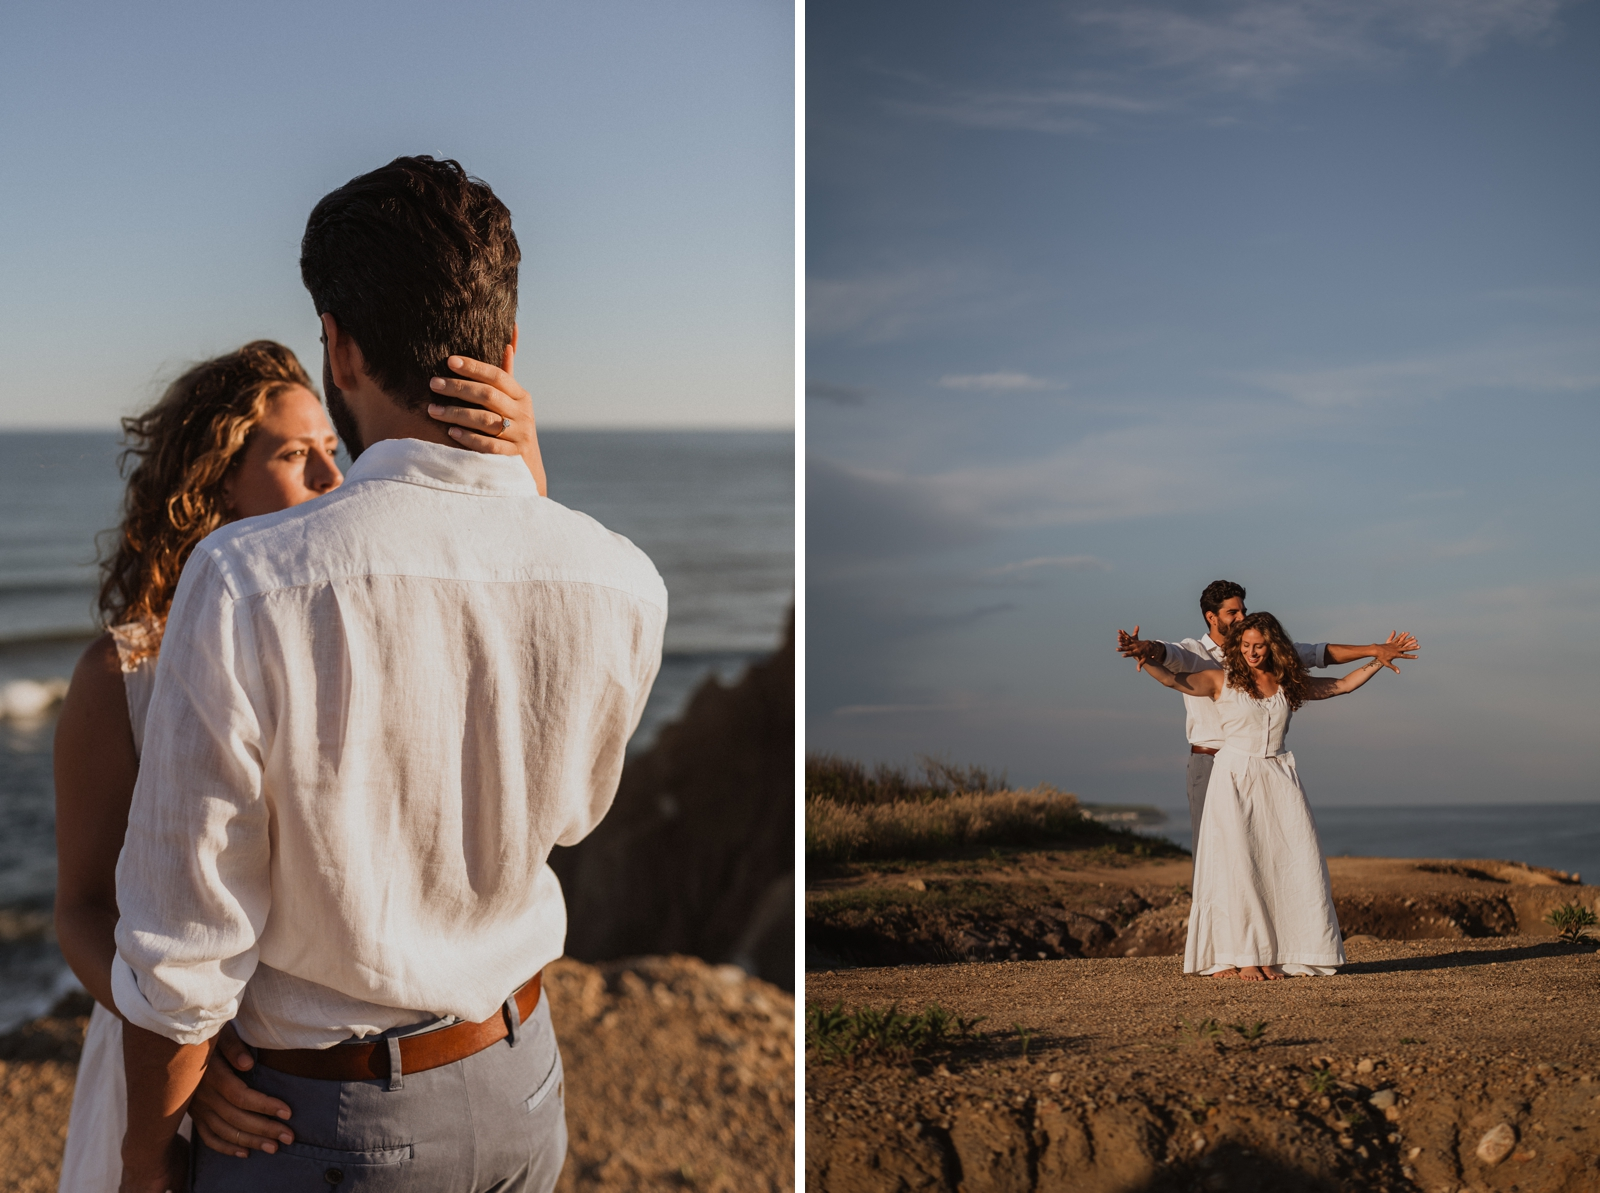 JJP_Nikki & Bud_Shadmoor_Montauk_NY_Cliff Engagement Session15.jpg_blog.jpg